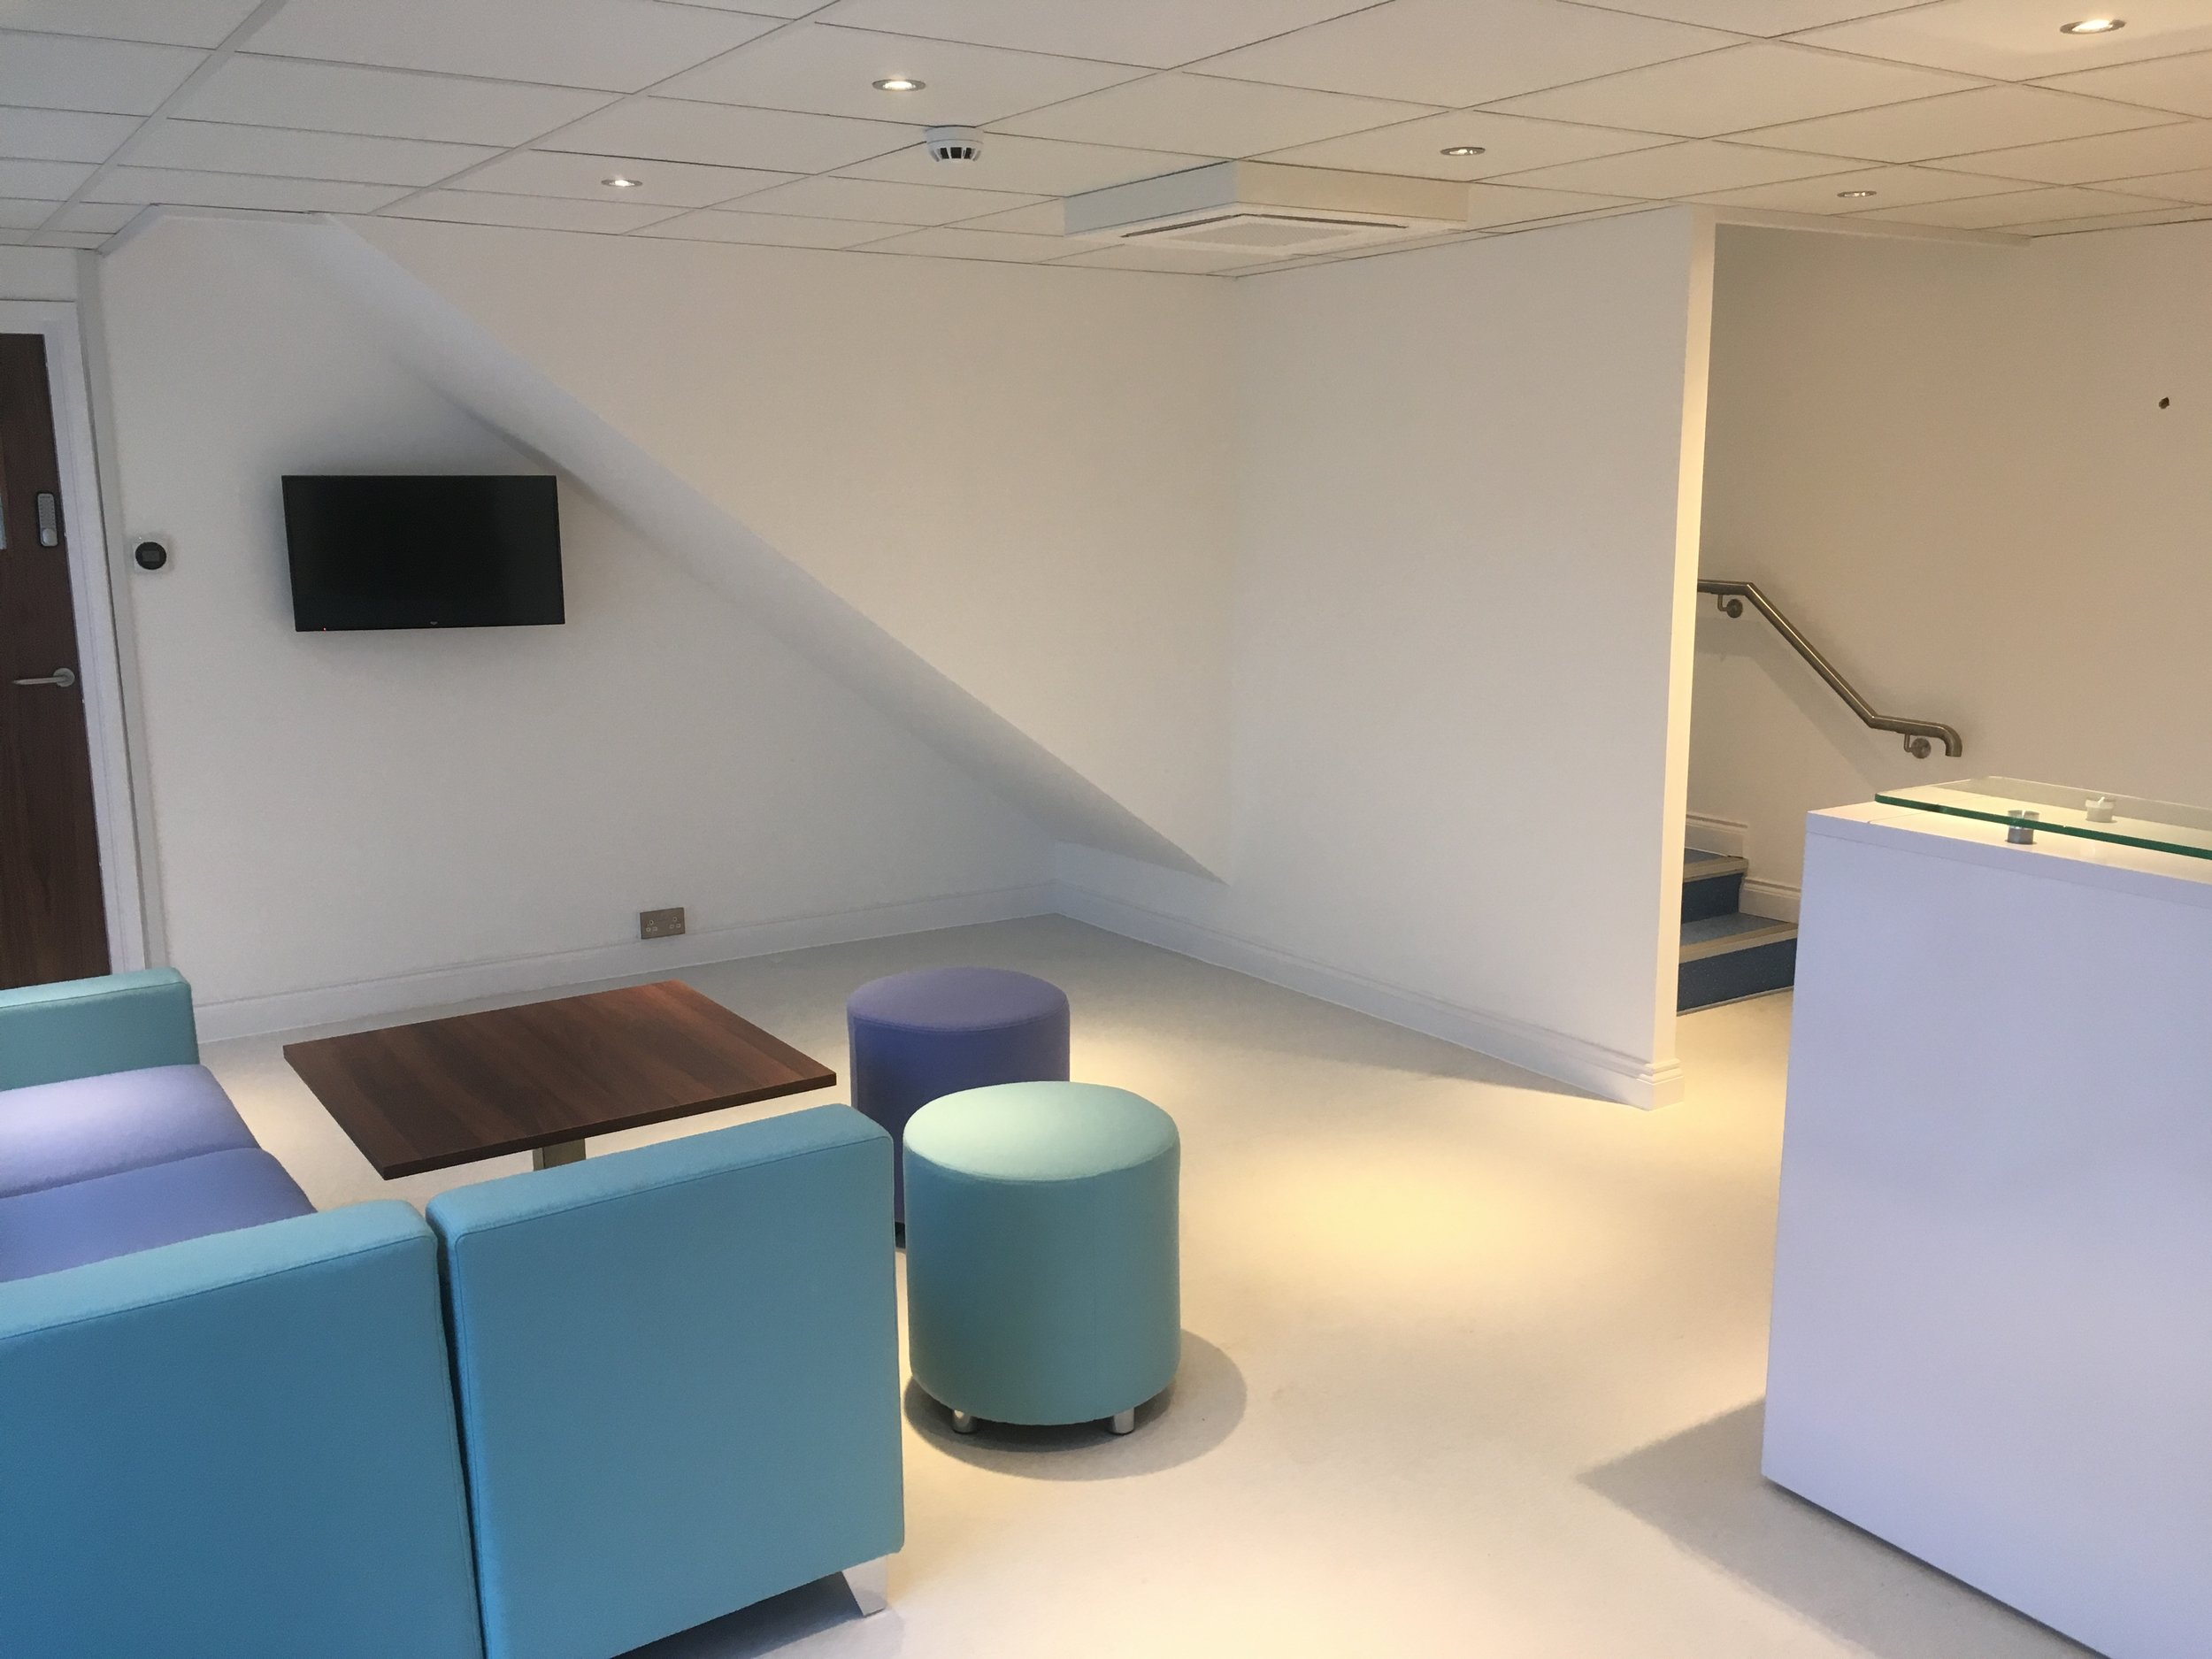 Office remodelling - design and refit - Littlehampton manufacturing sector-3